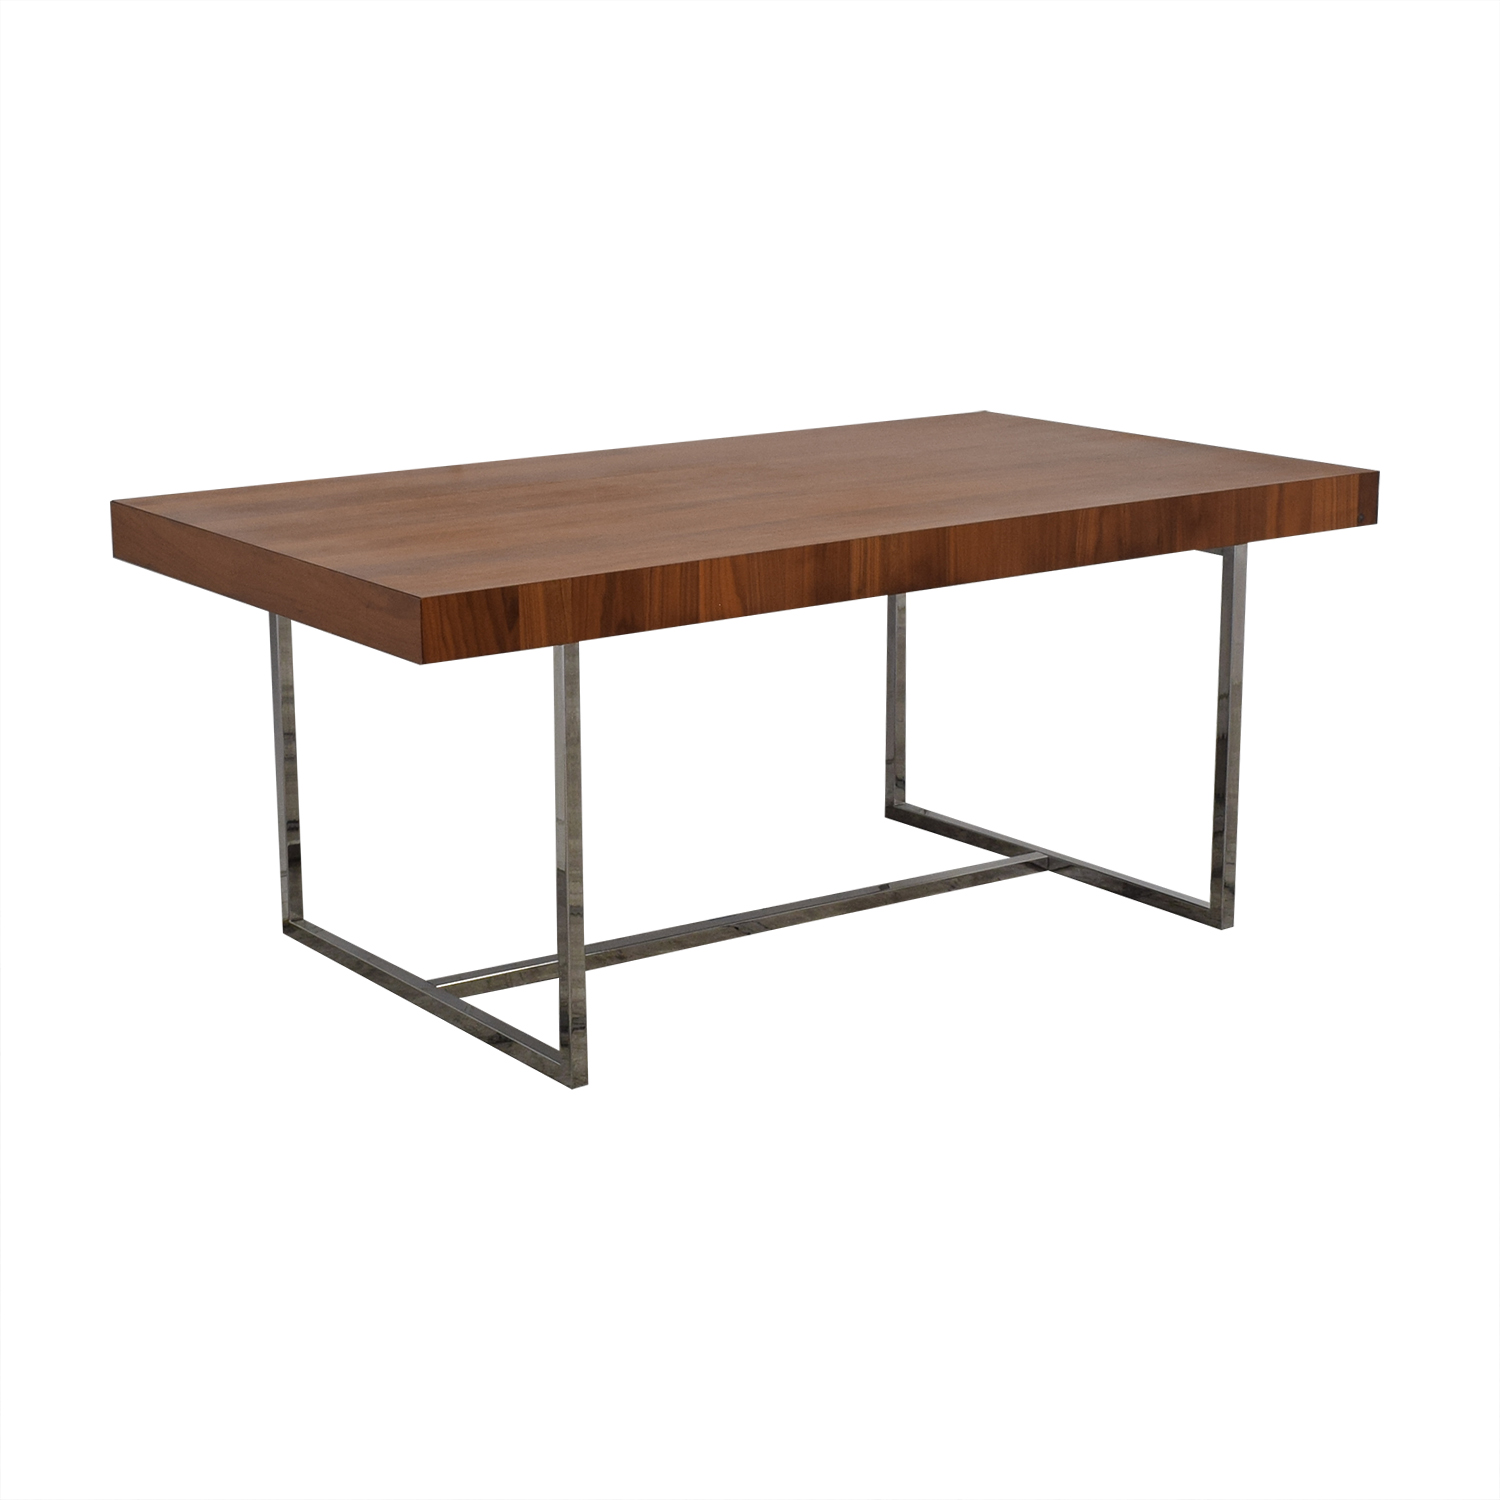 Calligaris Calligaris Extendable Dining Table nyc